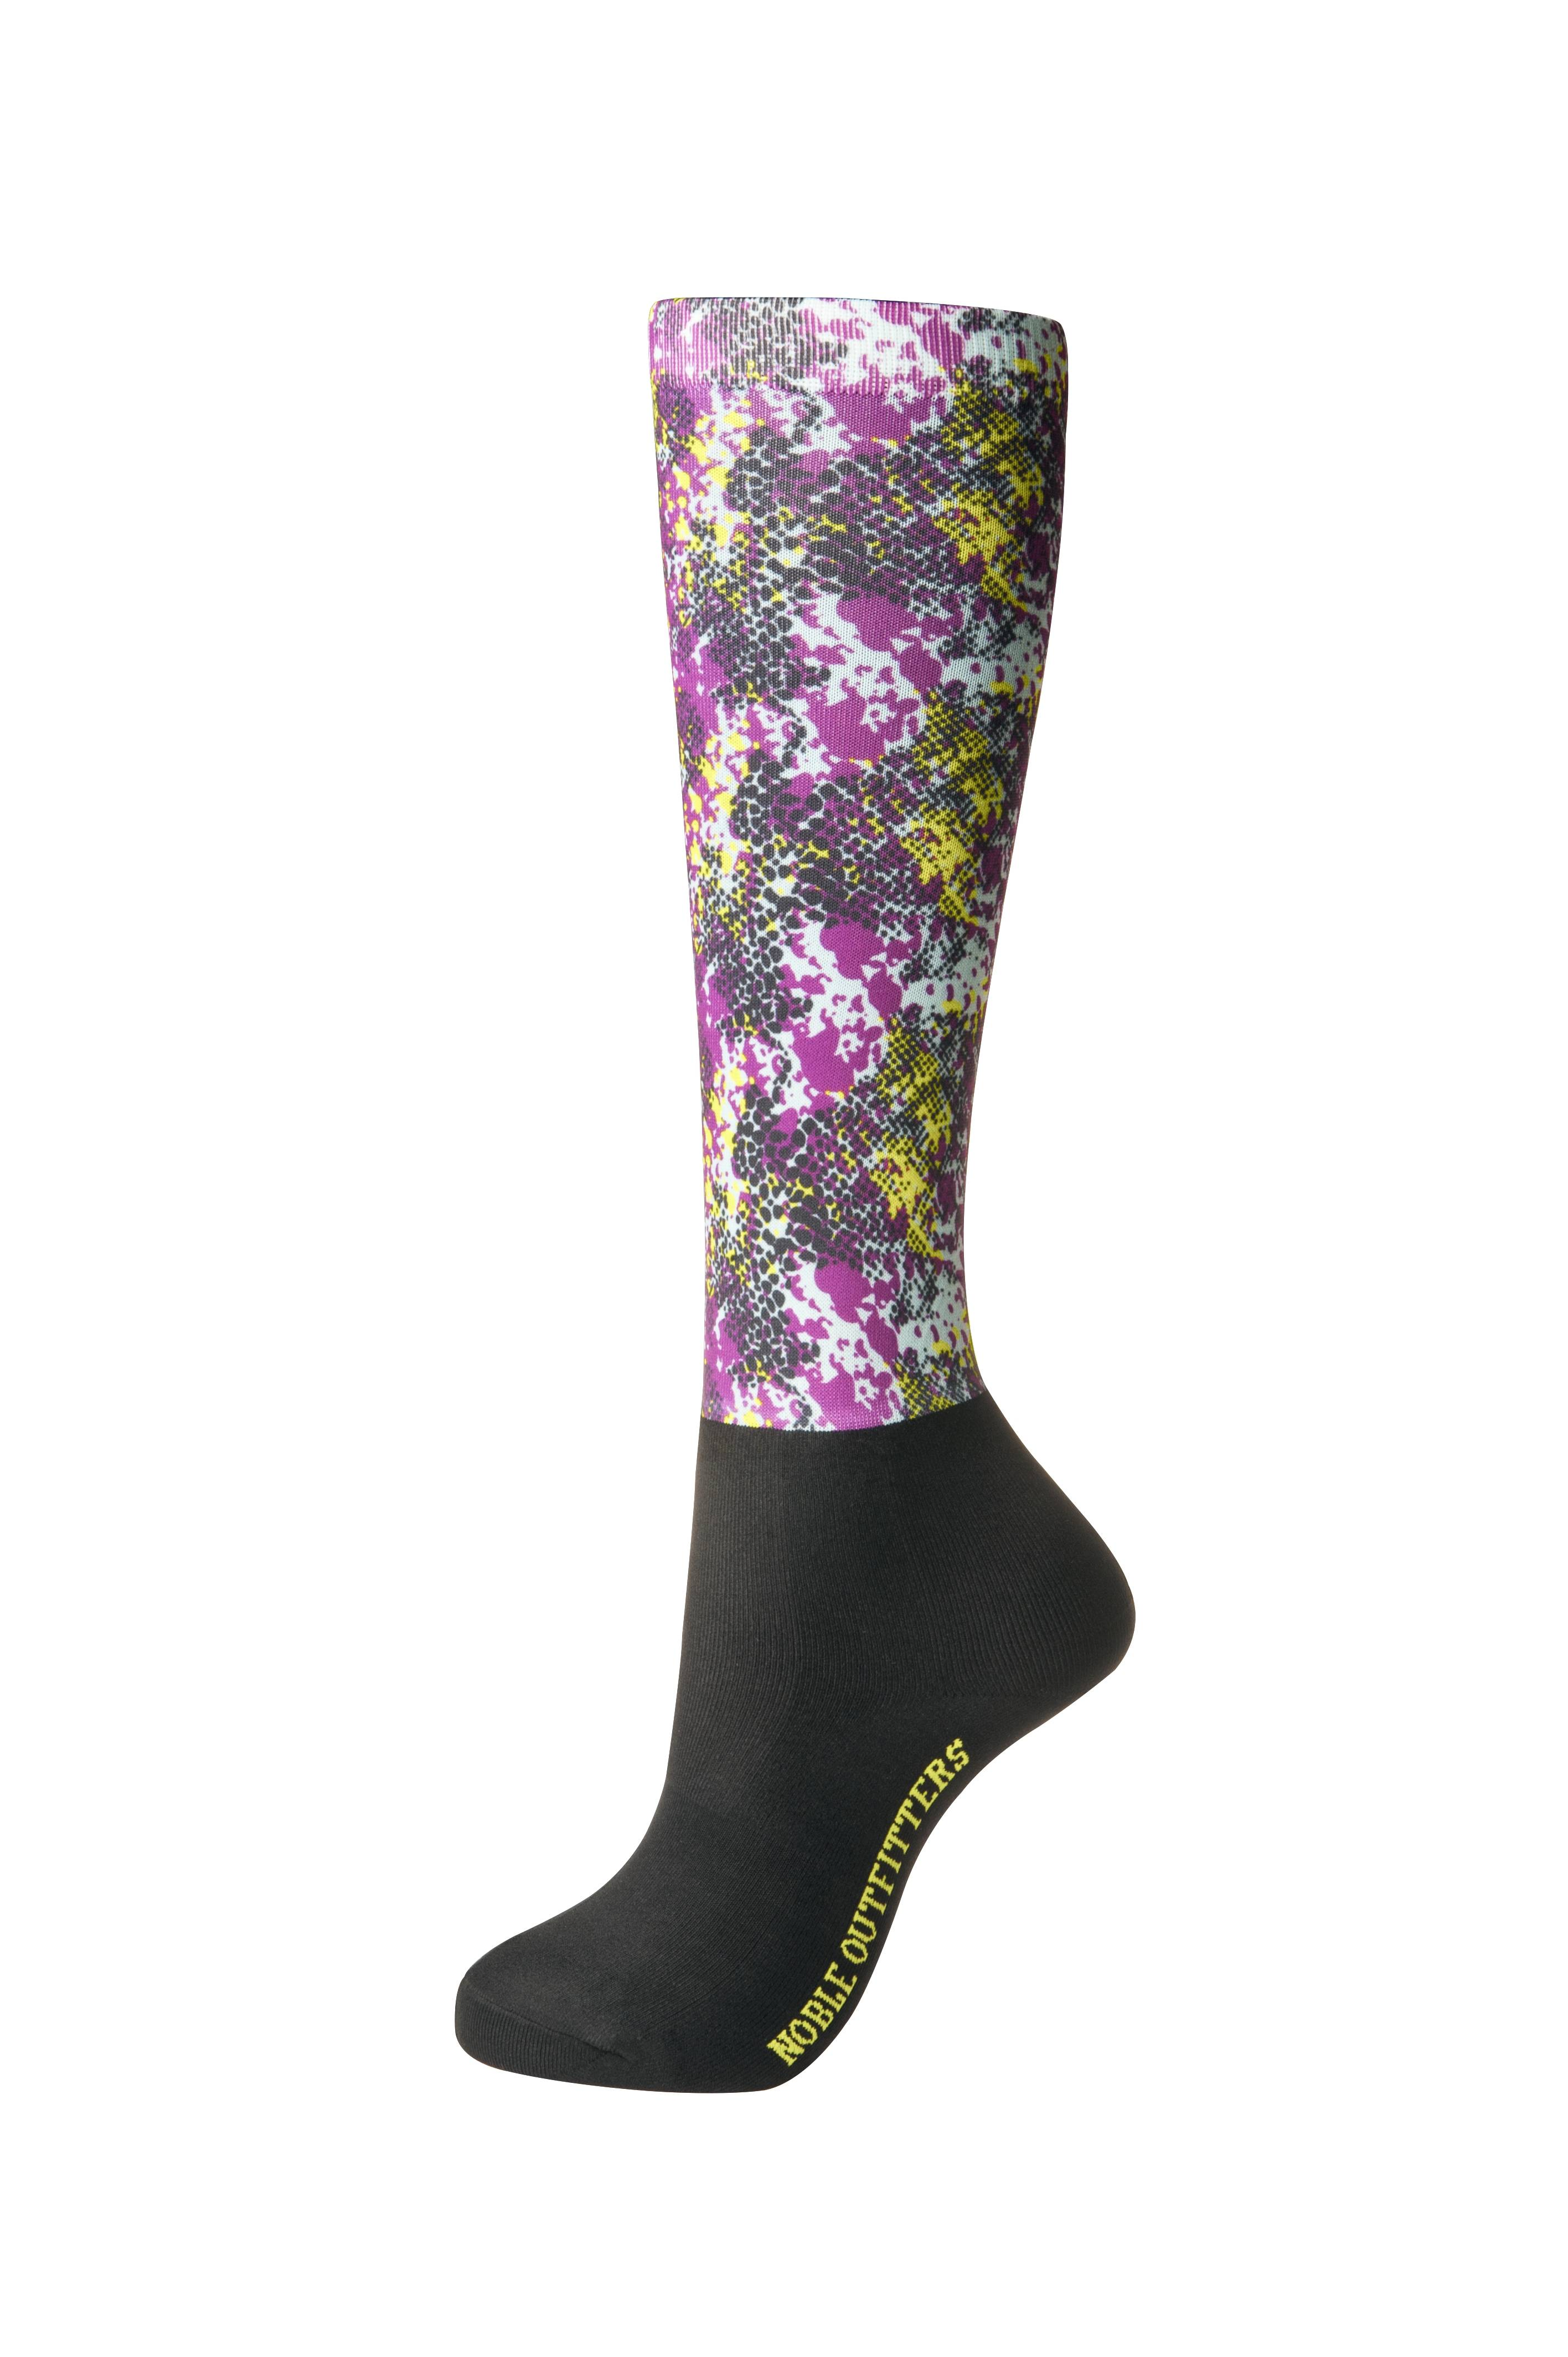 Noble Outfitter Ladies Printed Peddies OTC - Blackberry Snakeskin